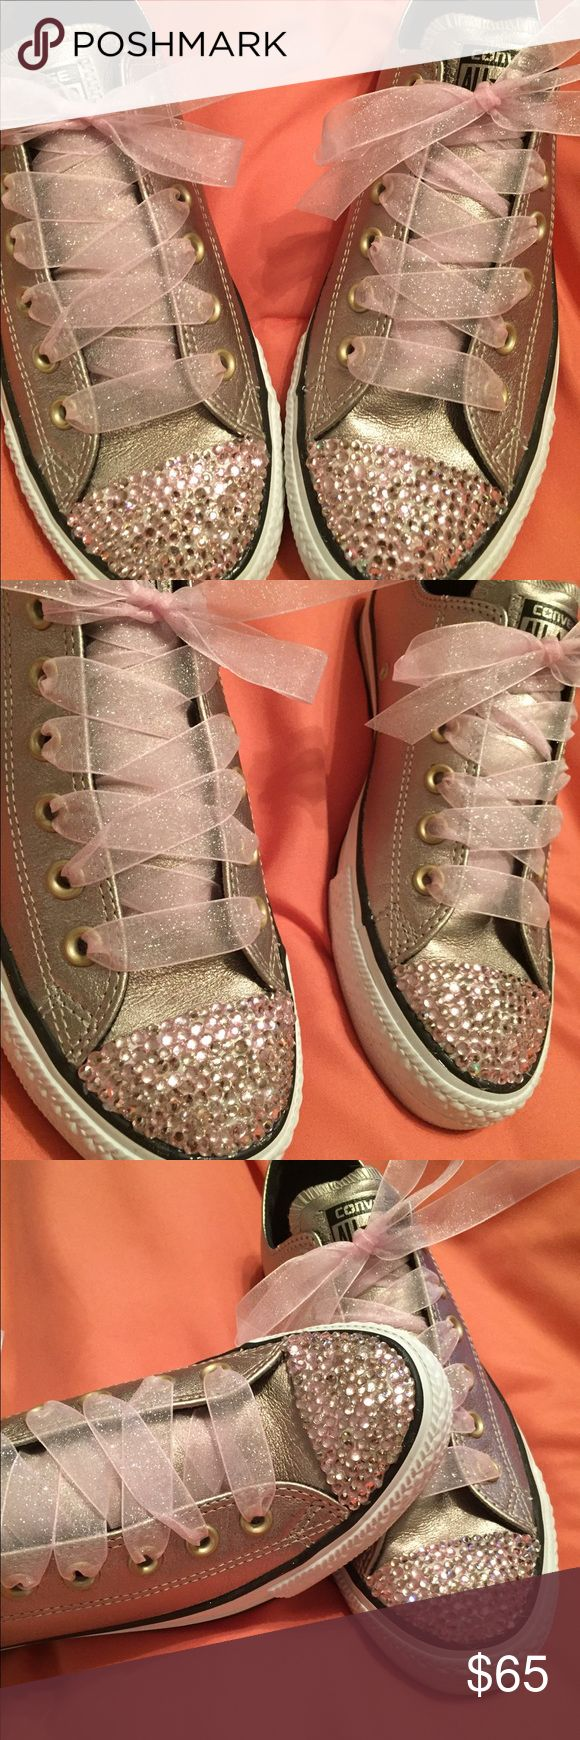 Converse Sneakers Leather Gold Converse, Really cute blinged out sneakers you are going to love these with your ragged out boyfriend jeans... Converse Shoes Sneakers